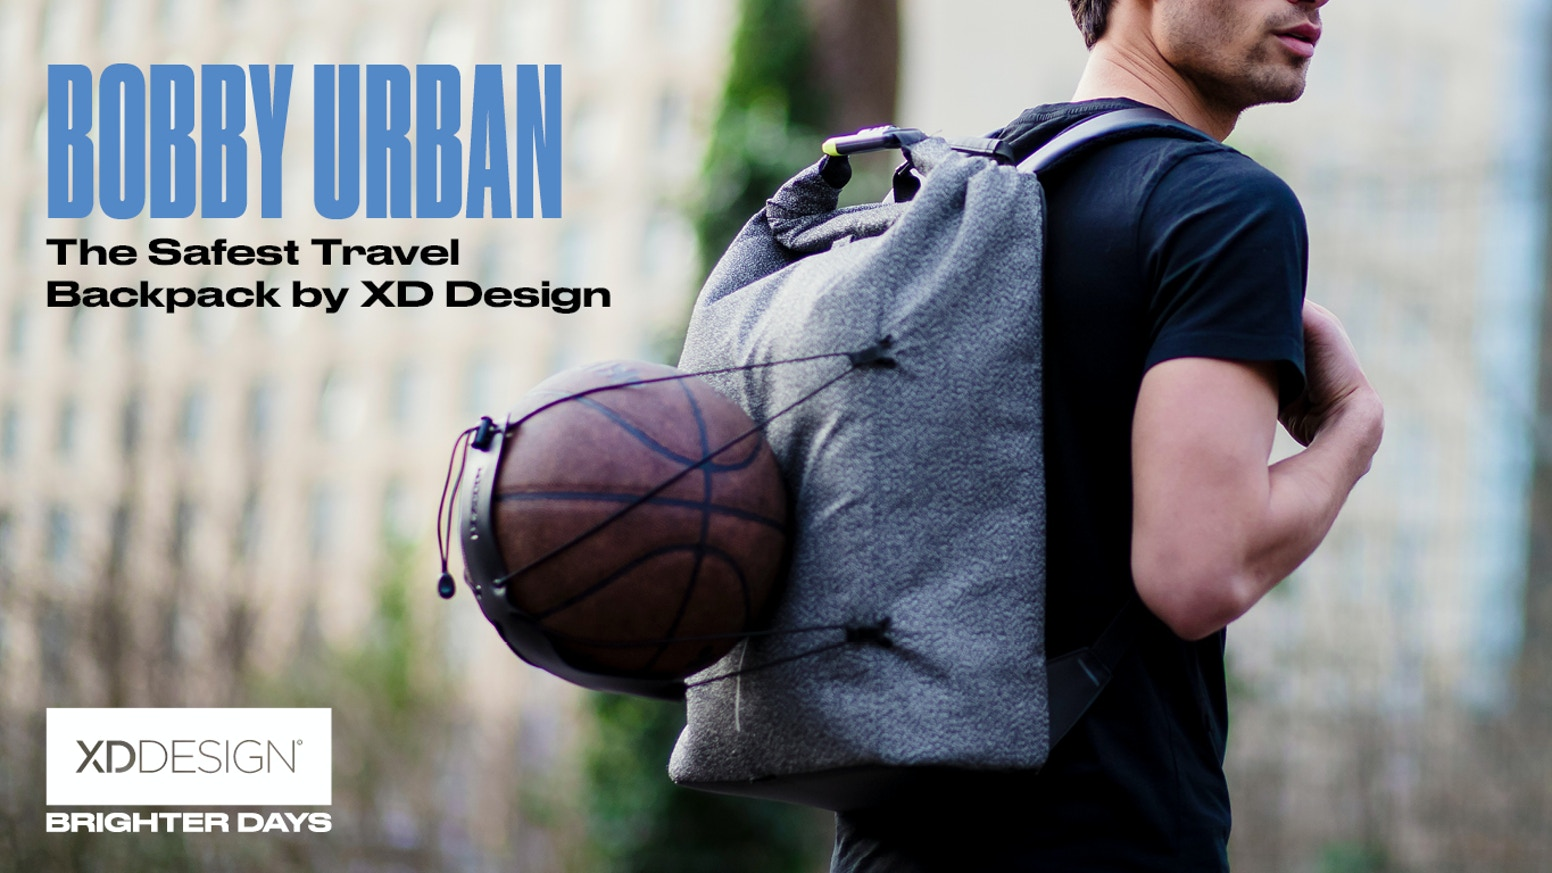 ddd8b7c9053 2 years after the introduction of our worldwide success -the Bobby  backpack- we proudly